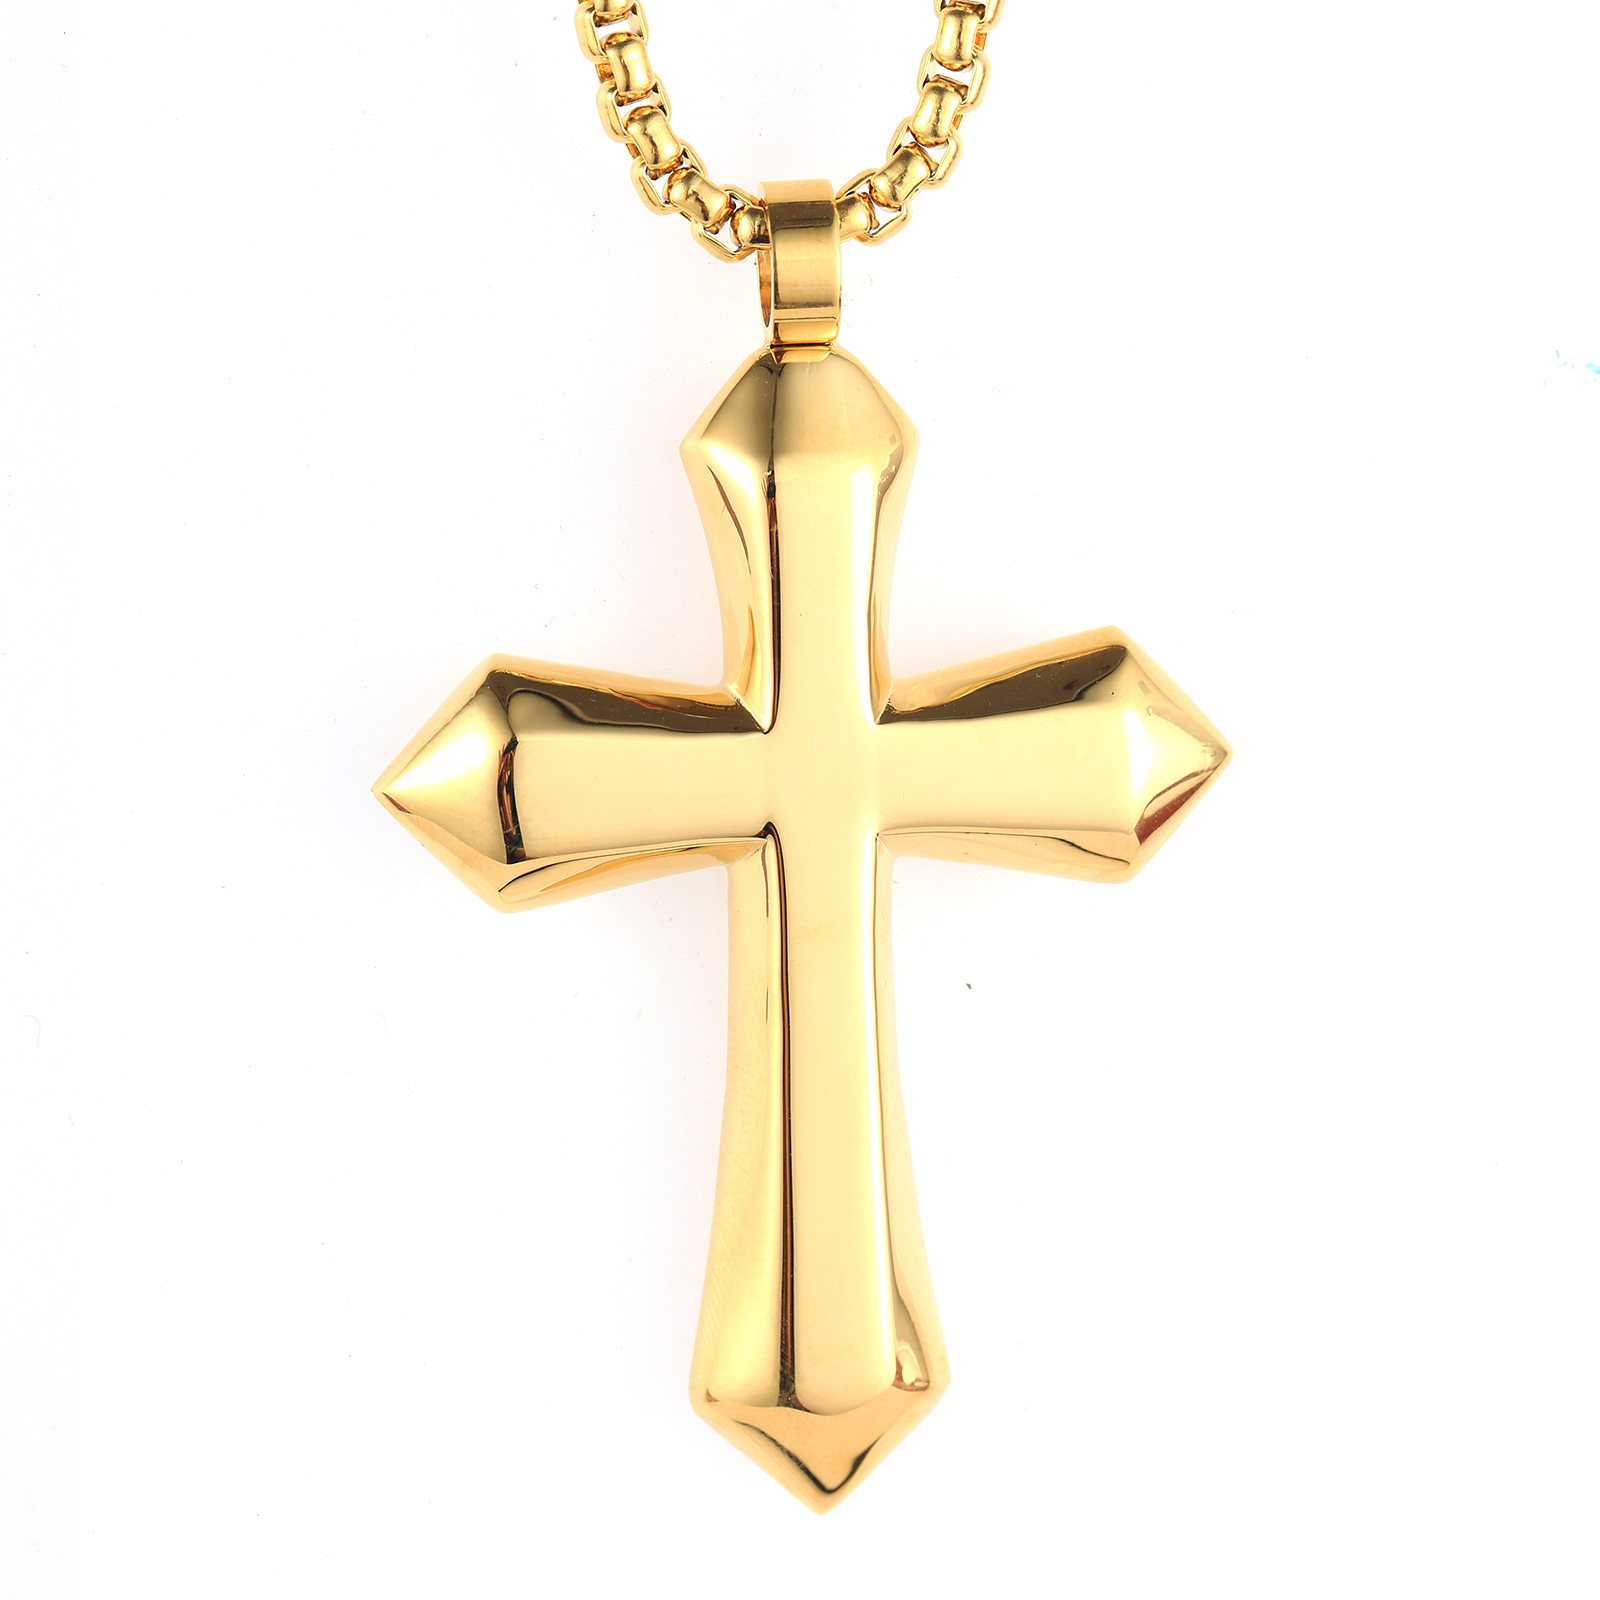 Simple golden cross stainless steel pendant necklace mens jewelry simple golden cross stainless steel pendant necklace men mozeypictures Images